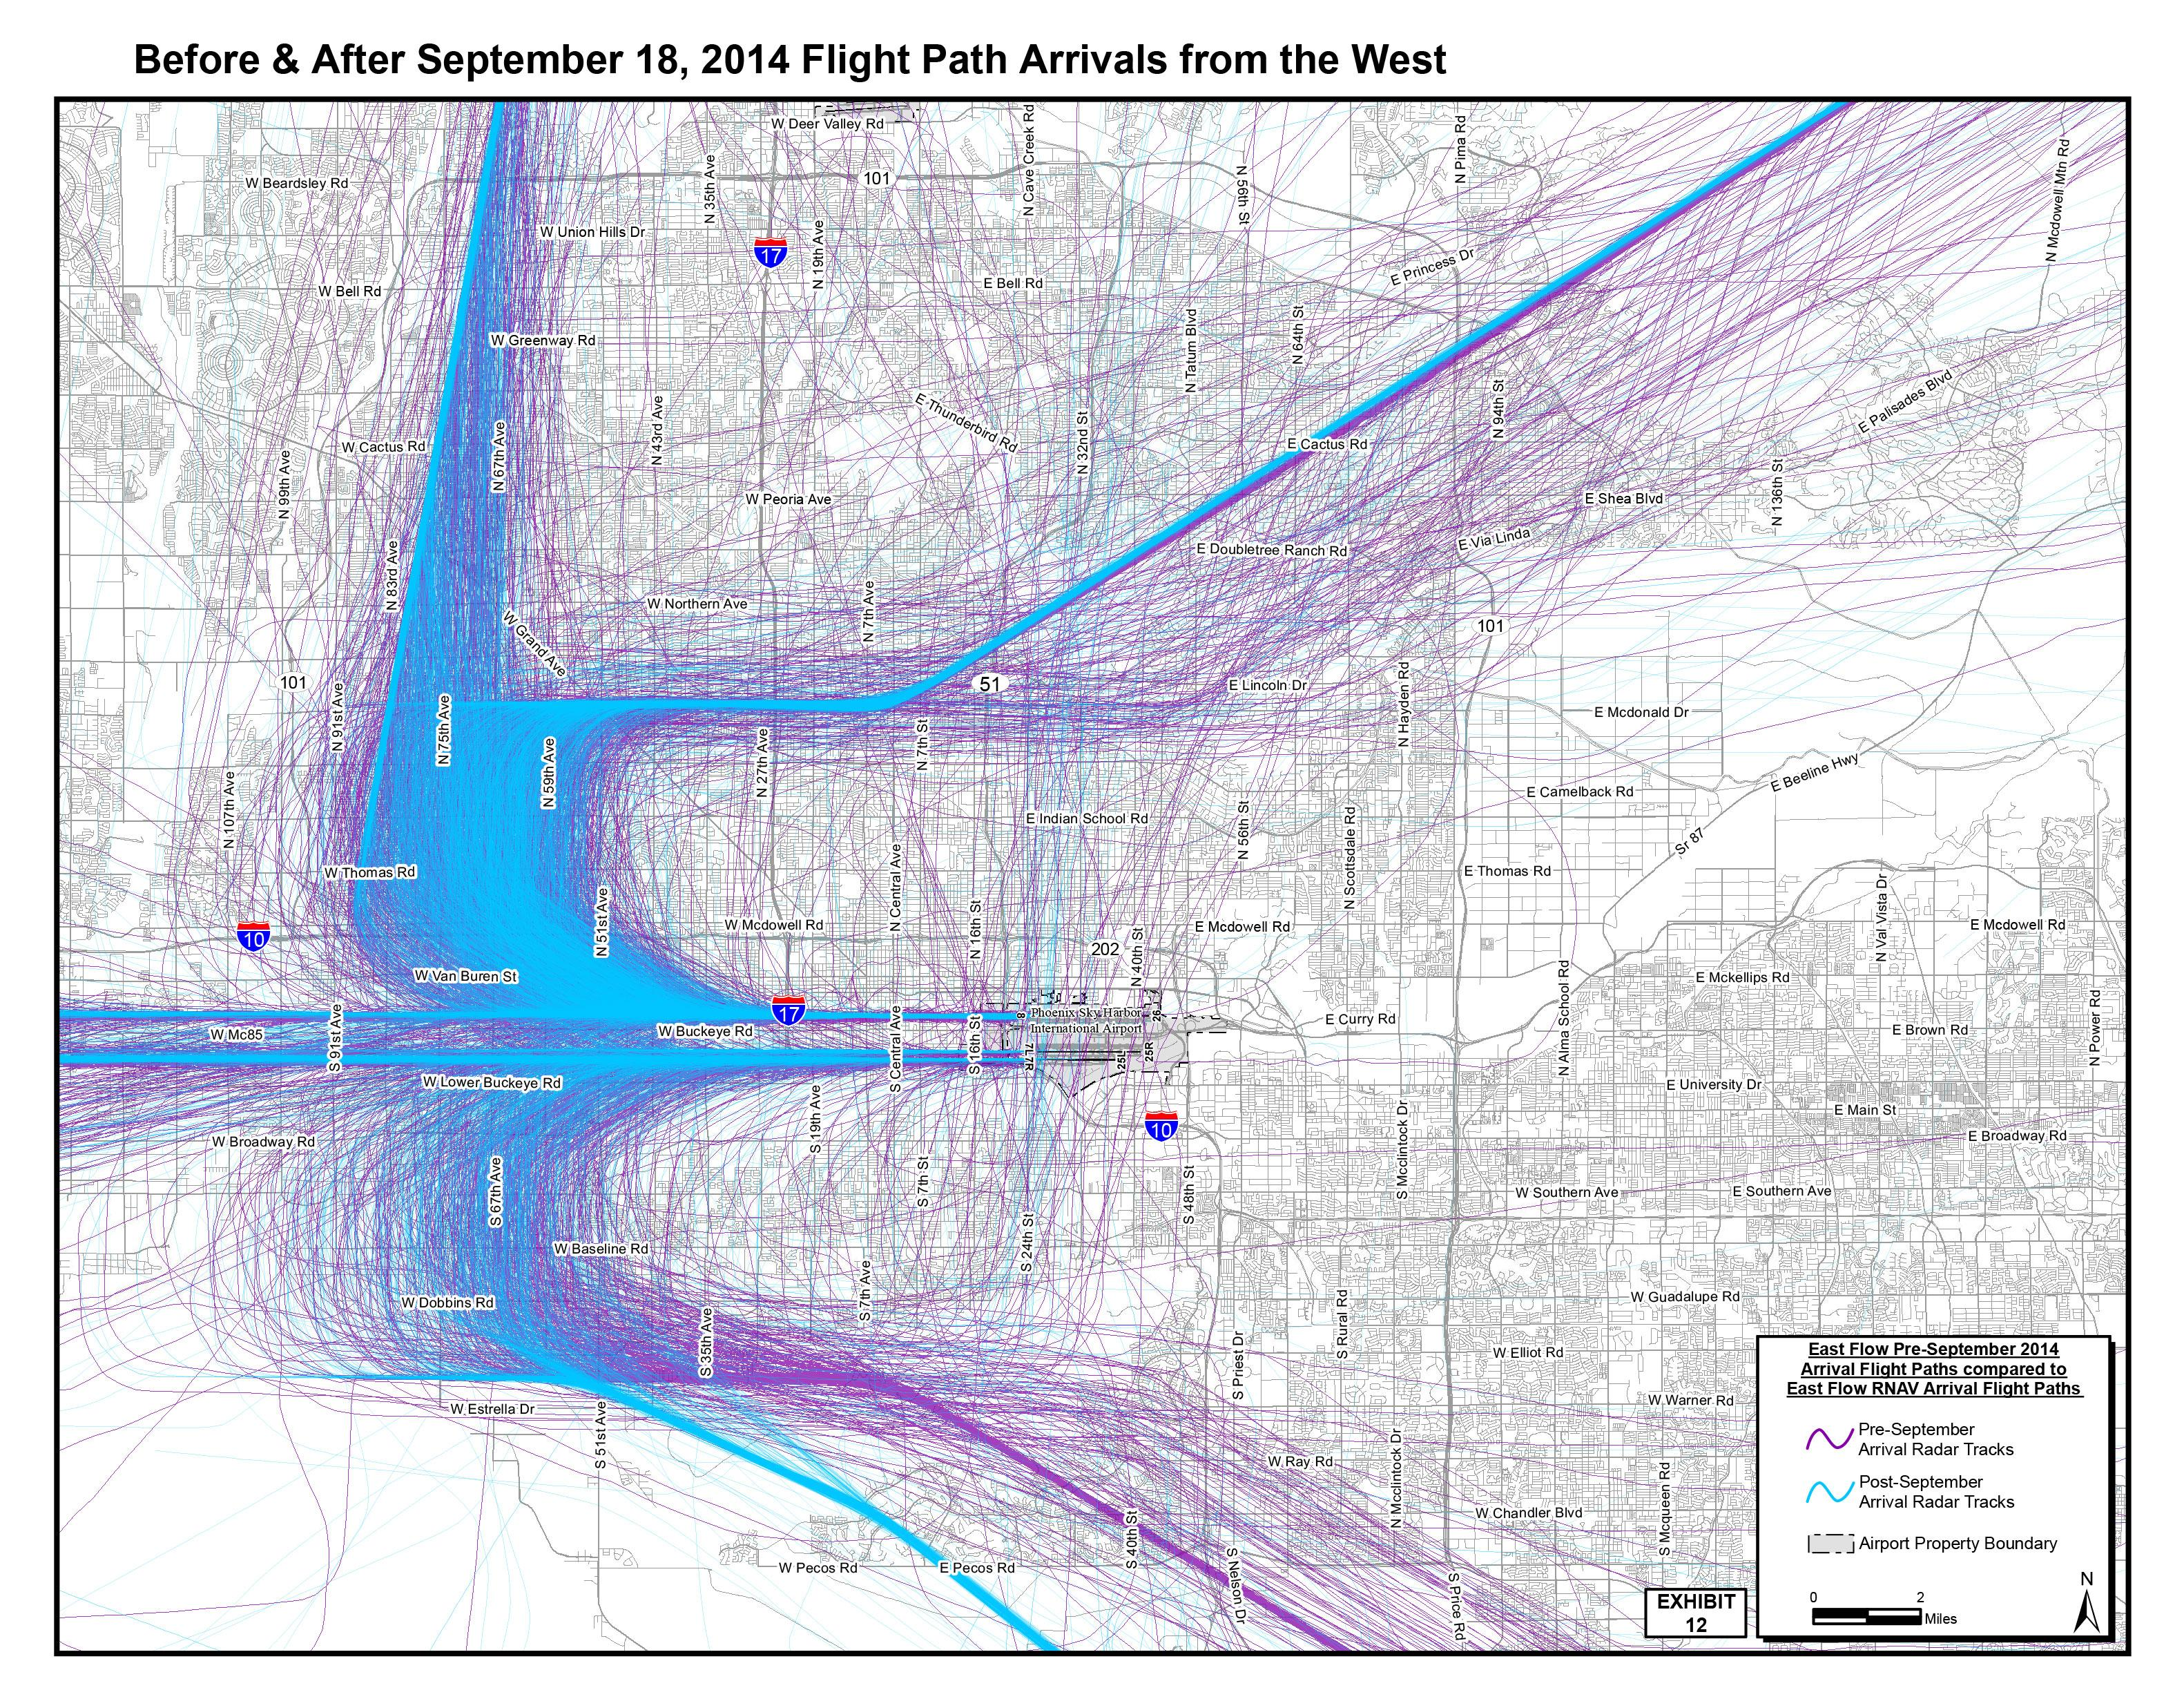 Bothered By Noise From Sky Harbor Flight Path Change? There\'s An App ...